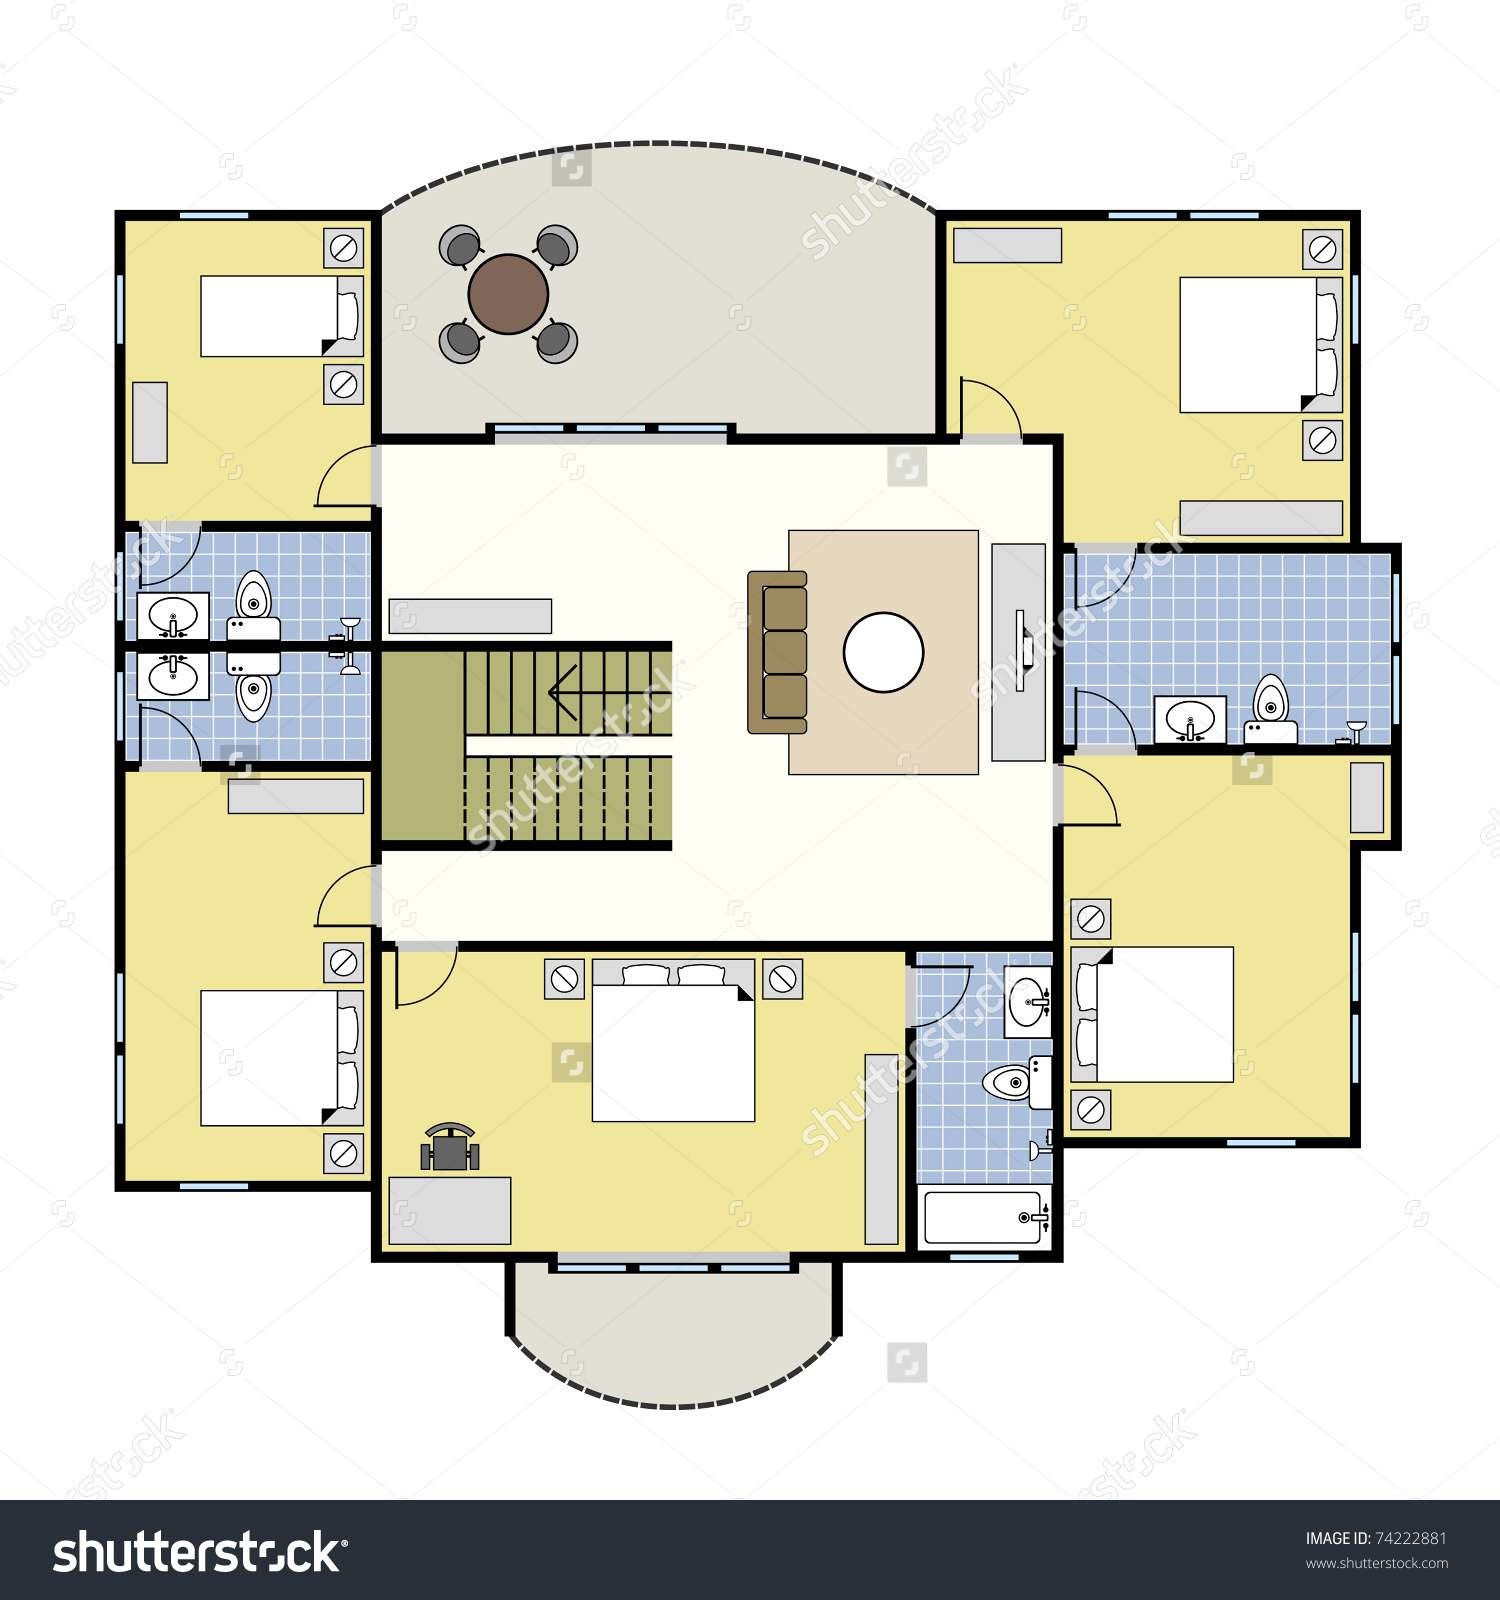 House Layout Plans Perfect Big Floor Plan Designs